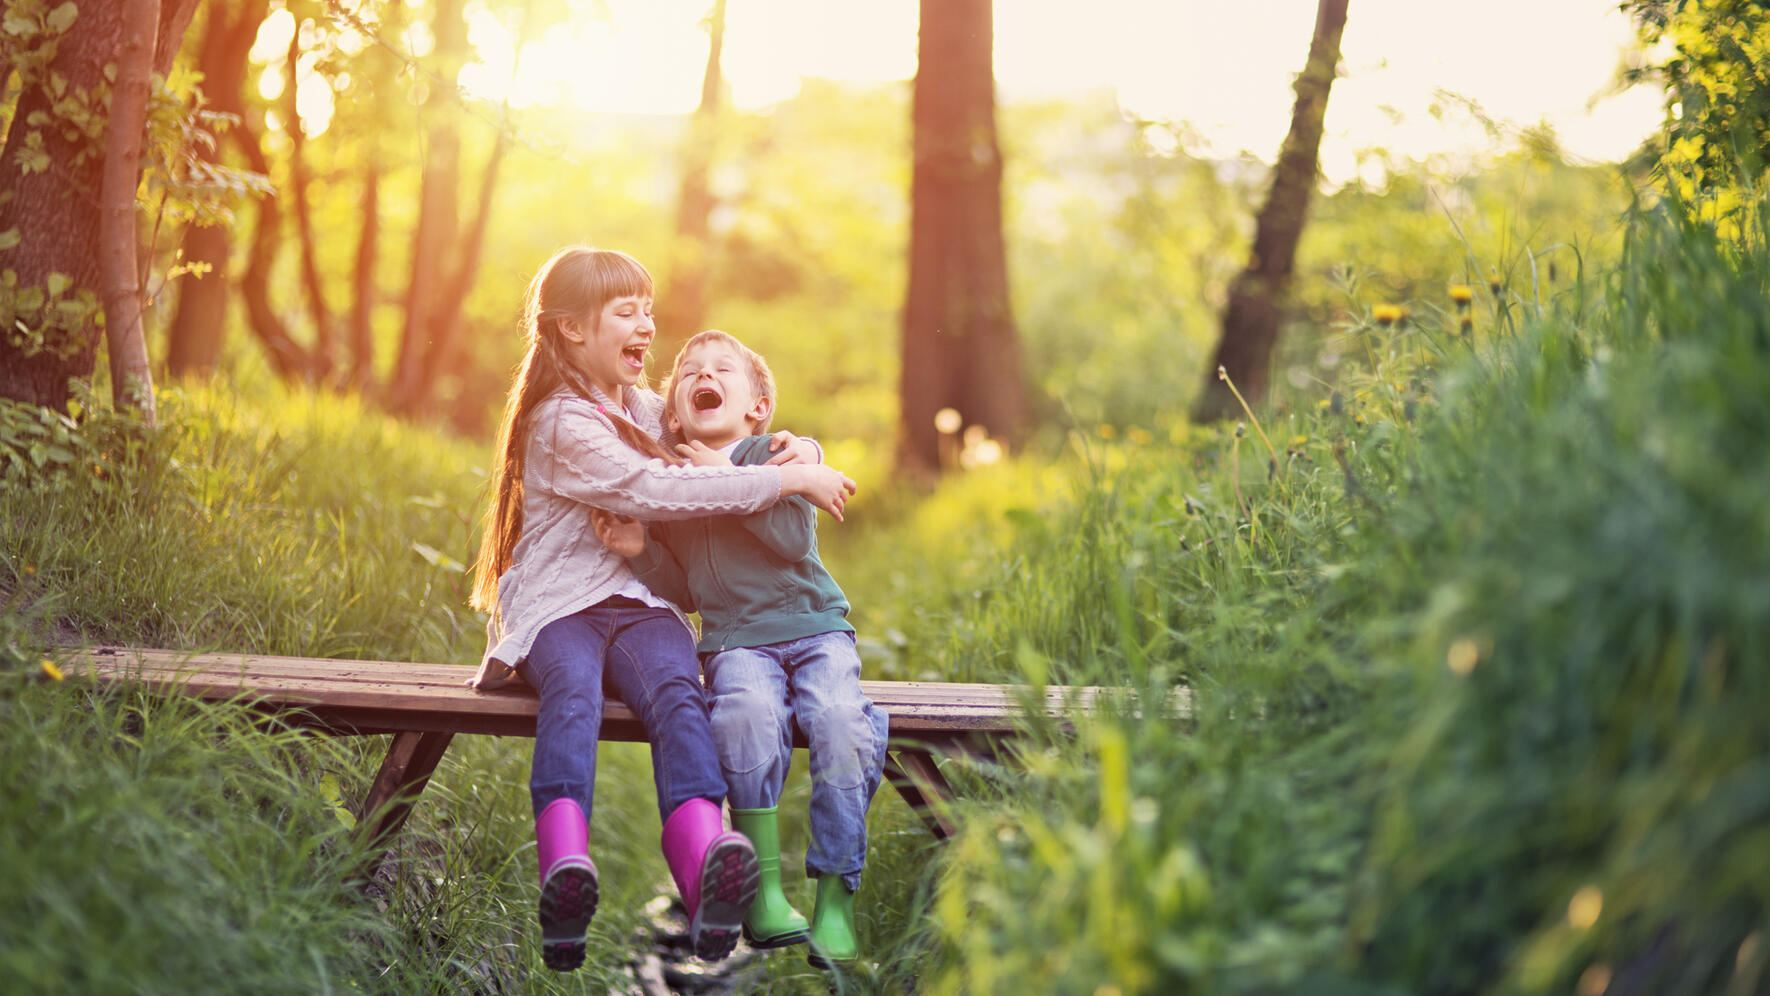 Little boy aged 5 and his elder sister aged 9 are sitting on the small bridge in the forest. They are enjoying beautiful nature and the sunset, laughing happily.